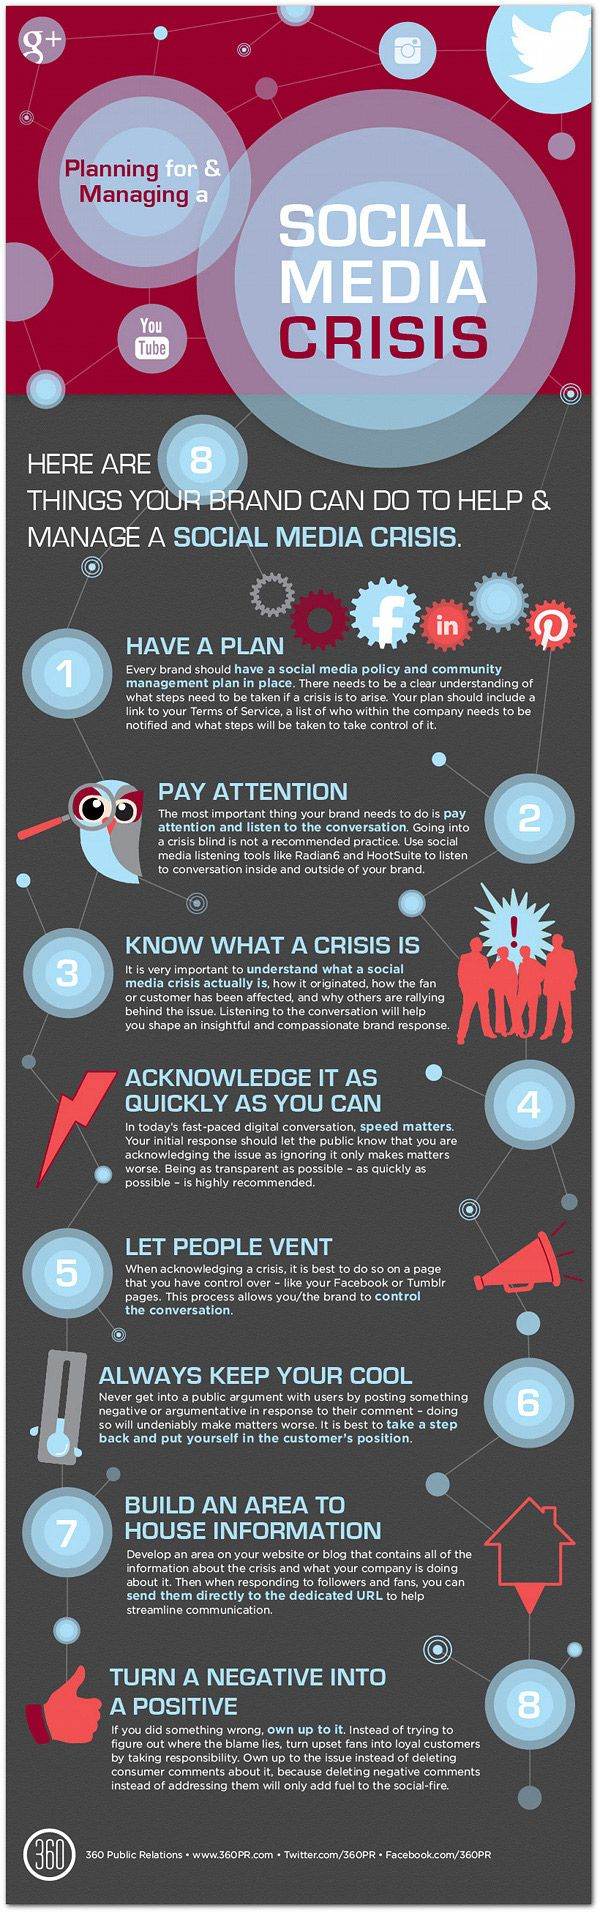 8 Steps to Planning for a Social Media-Crisis (Infographic)